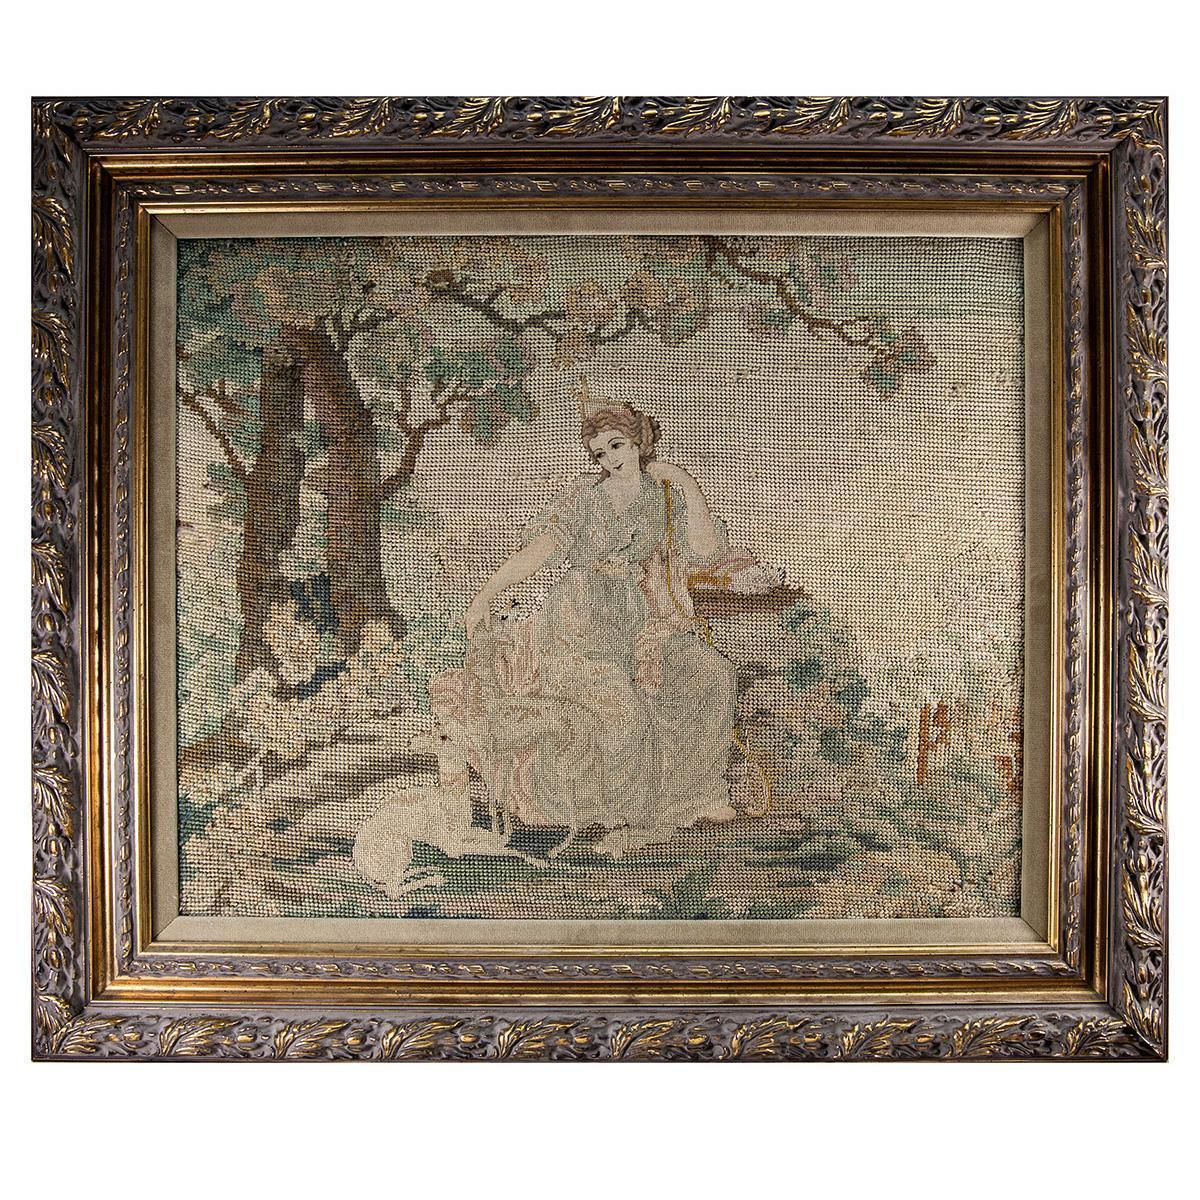 Fine Antique Petitpoint Needlepoint Tapestry in Frame,